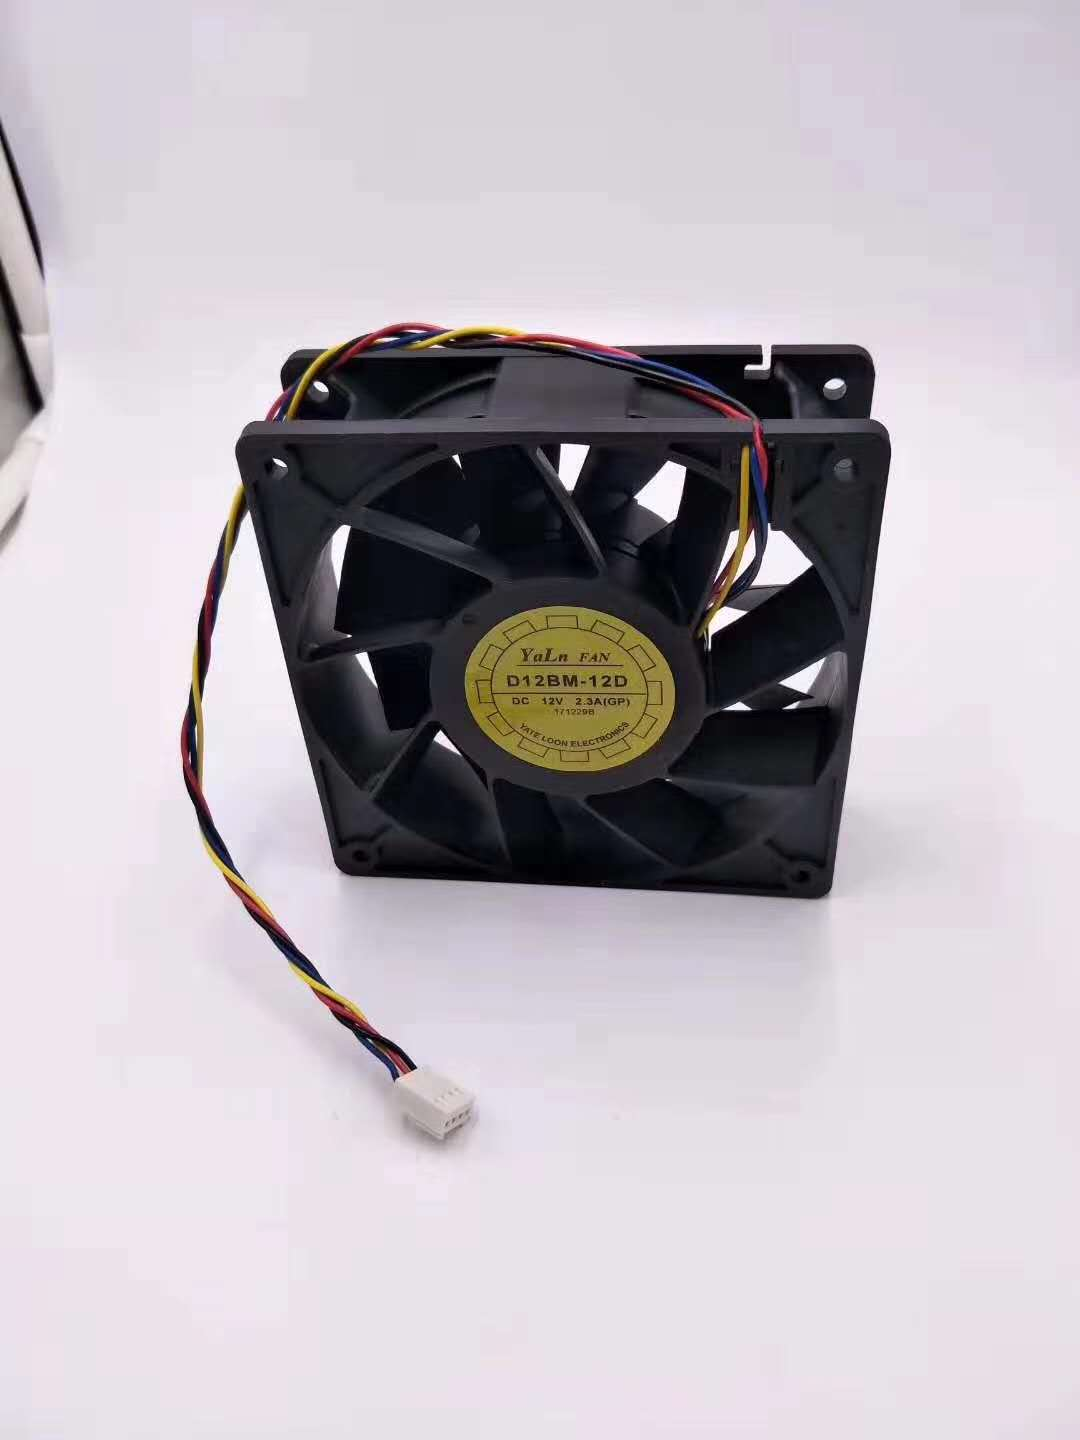 120mm PWM Case Fan Replacement for Antminer S3 S5 S5+ S7 S9 T9 L3+ 190CFM Dual Ball Bearing, 4-Wire 4-Pin Connector